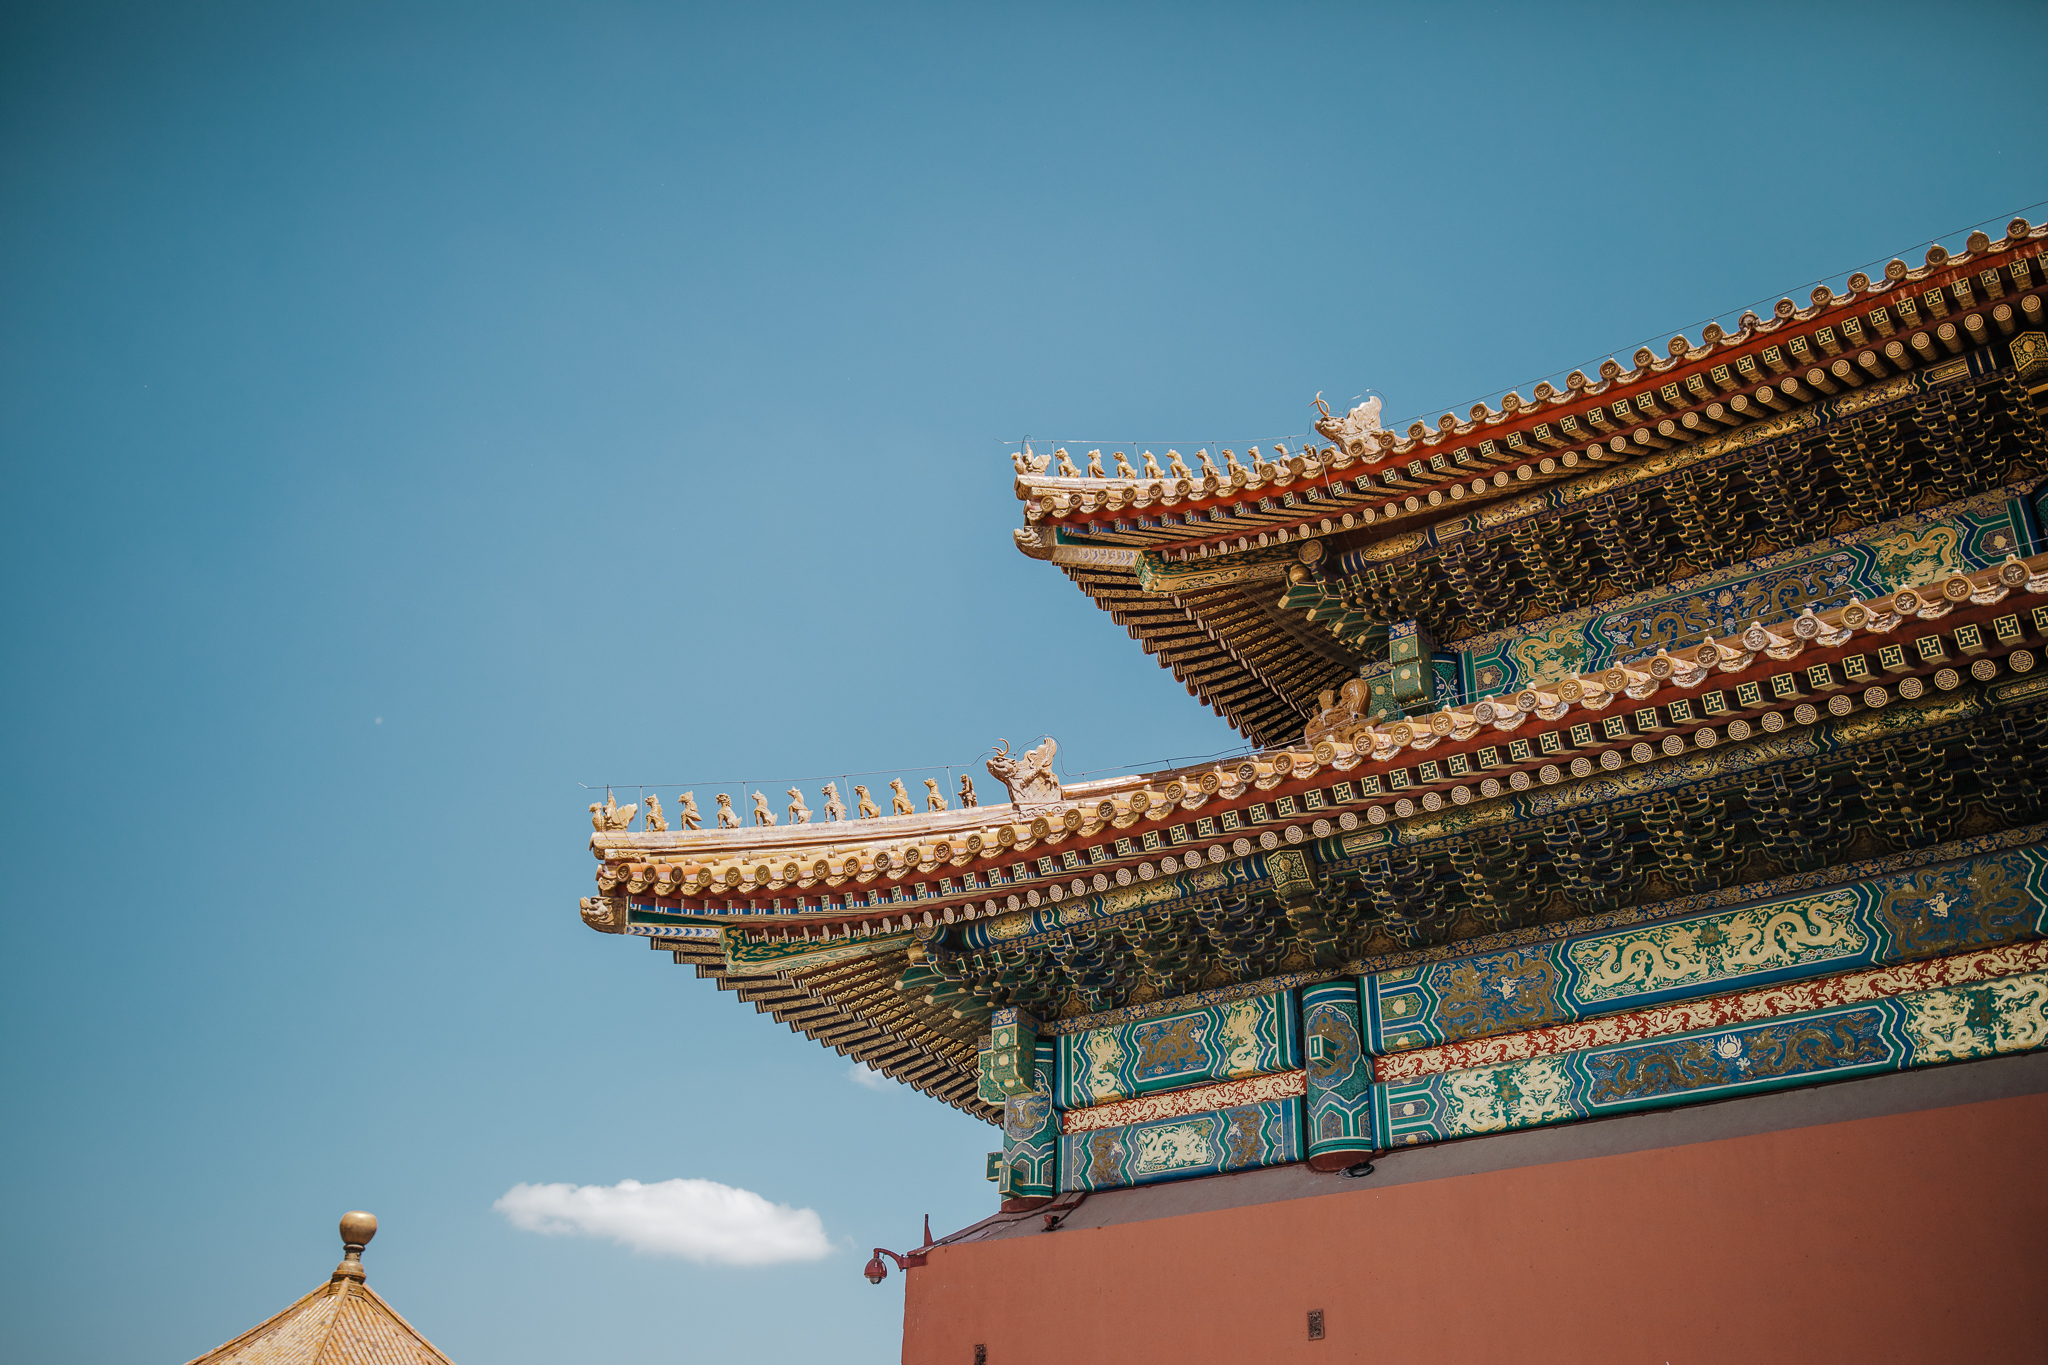 Mutianyu, Great Wall of China,  Beijing, Forbidden City, Emperors Summer Palace (19 of 51).jpg